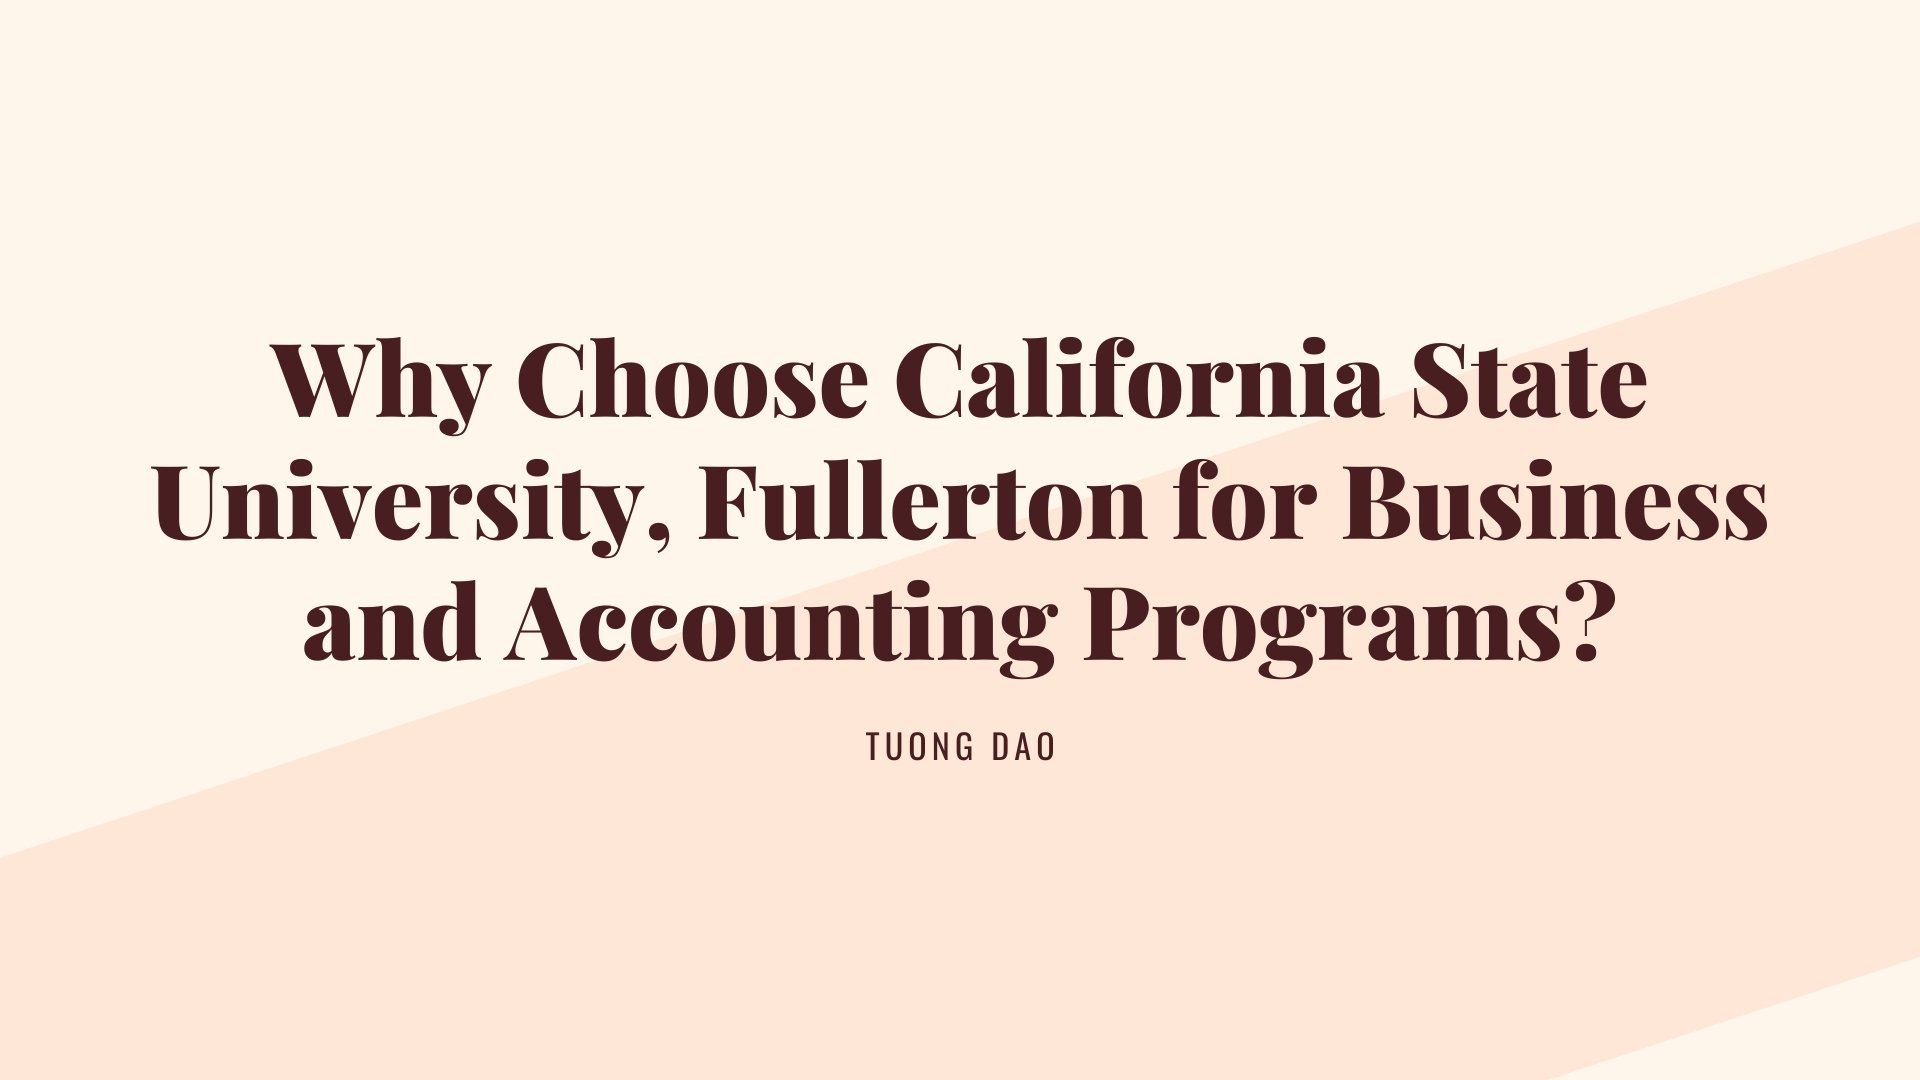 Cal State Fullerton Is A Good Choice for Accounting Programs